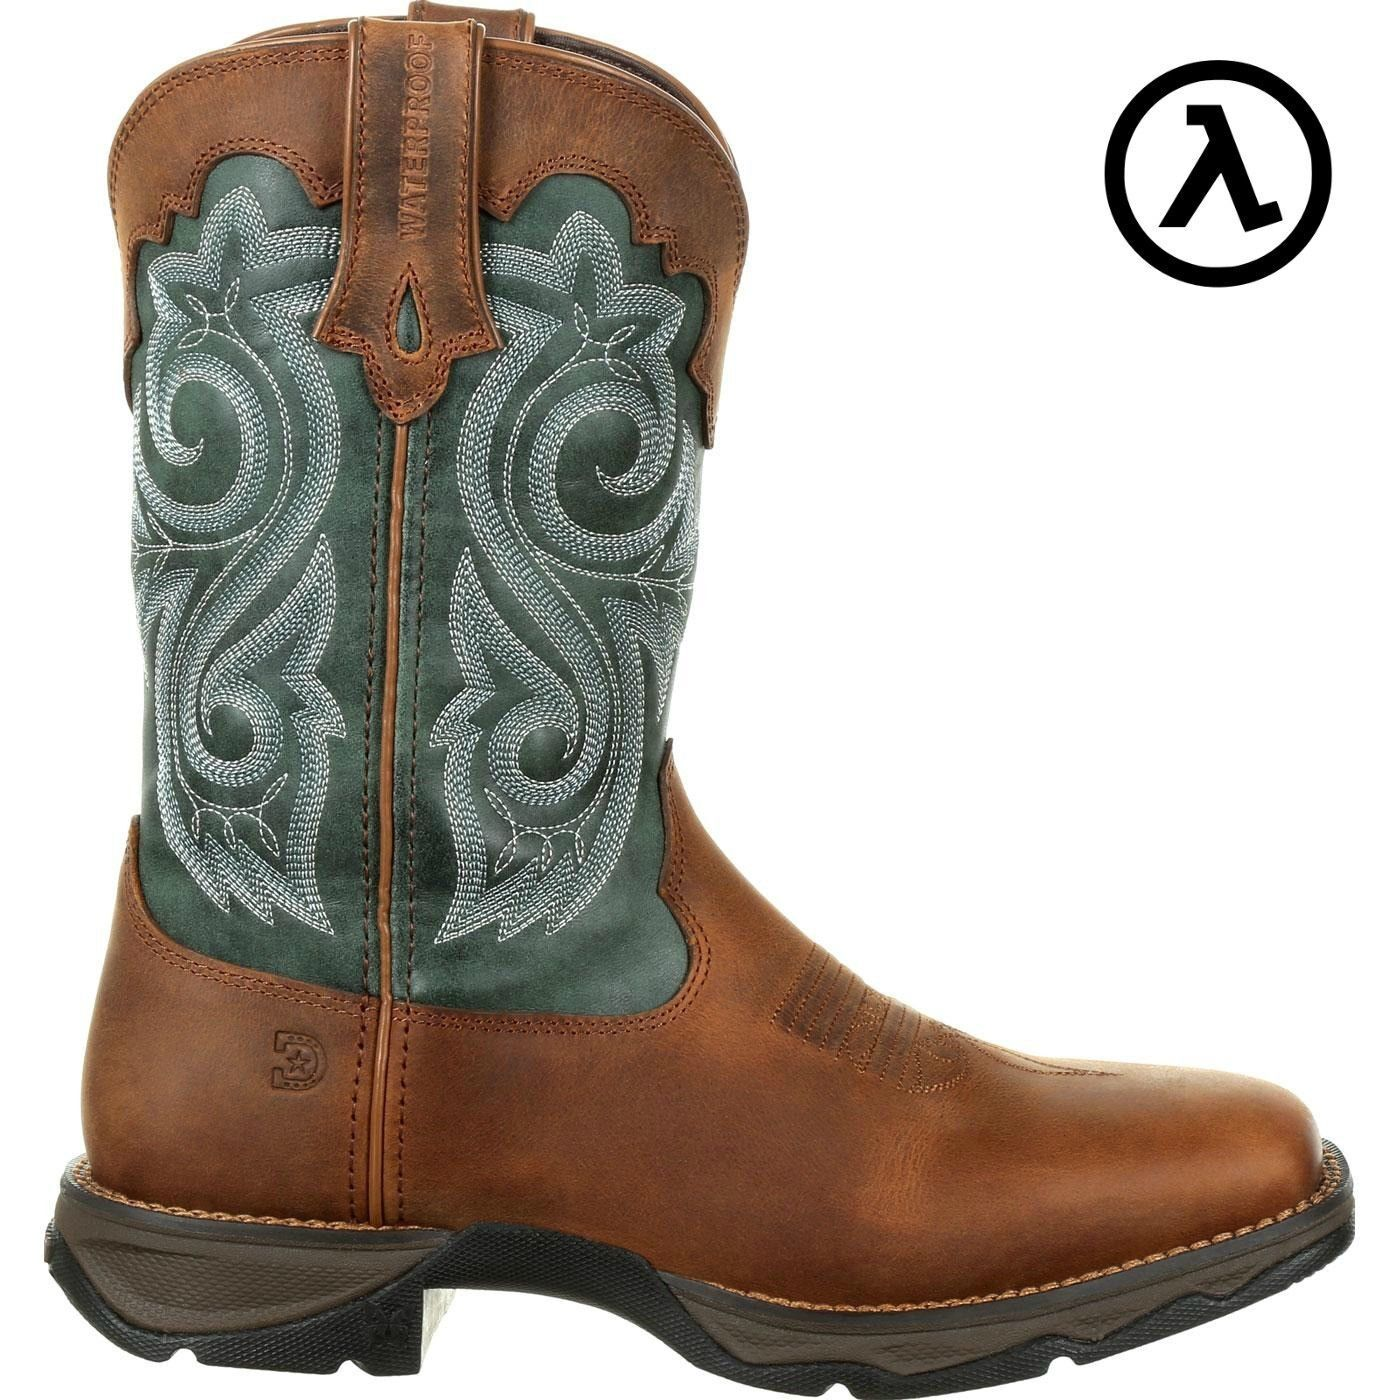 LADY REBEL BY DURANGO WOMEN'S WATERPROOF WESTERN BOOTS DRD0312 * ALL SIZES - NEW